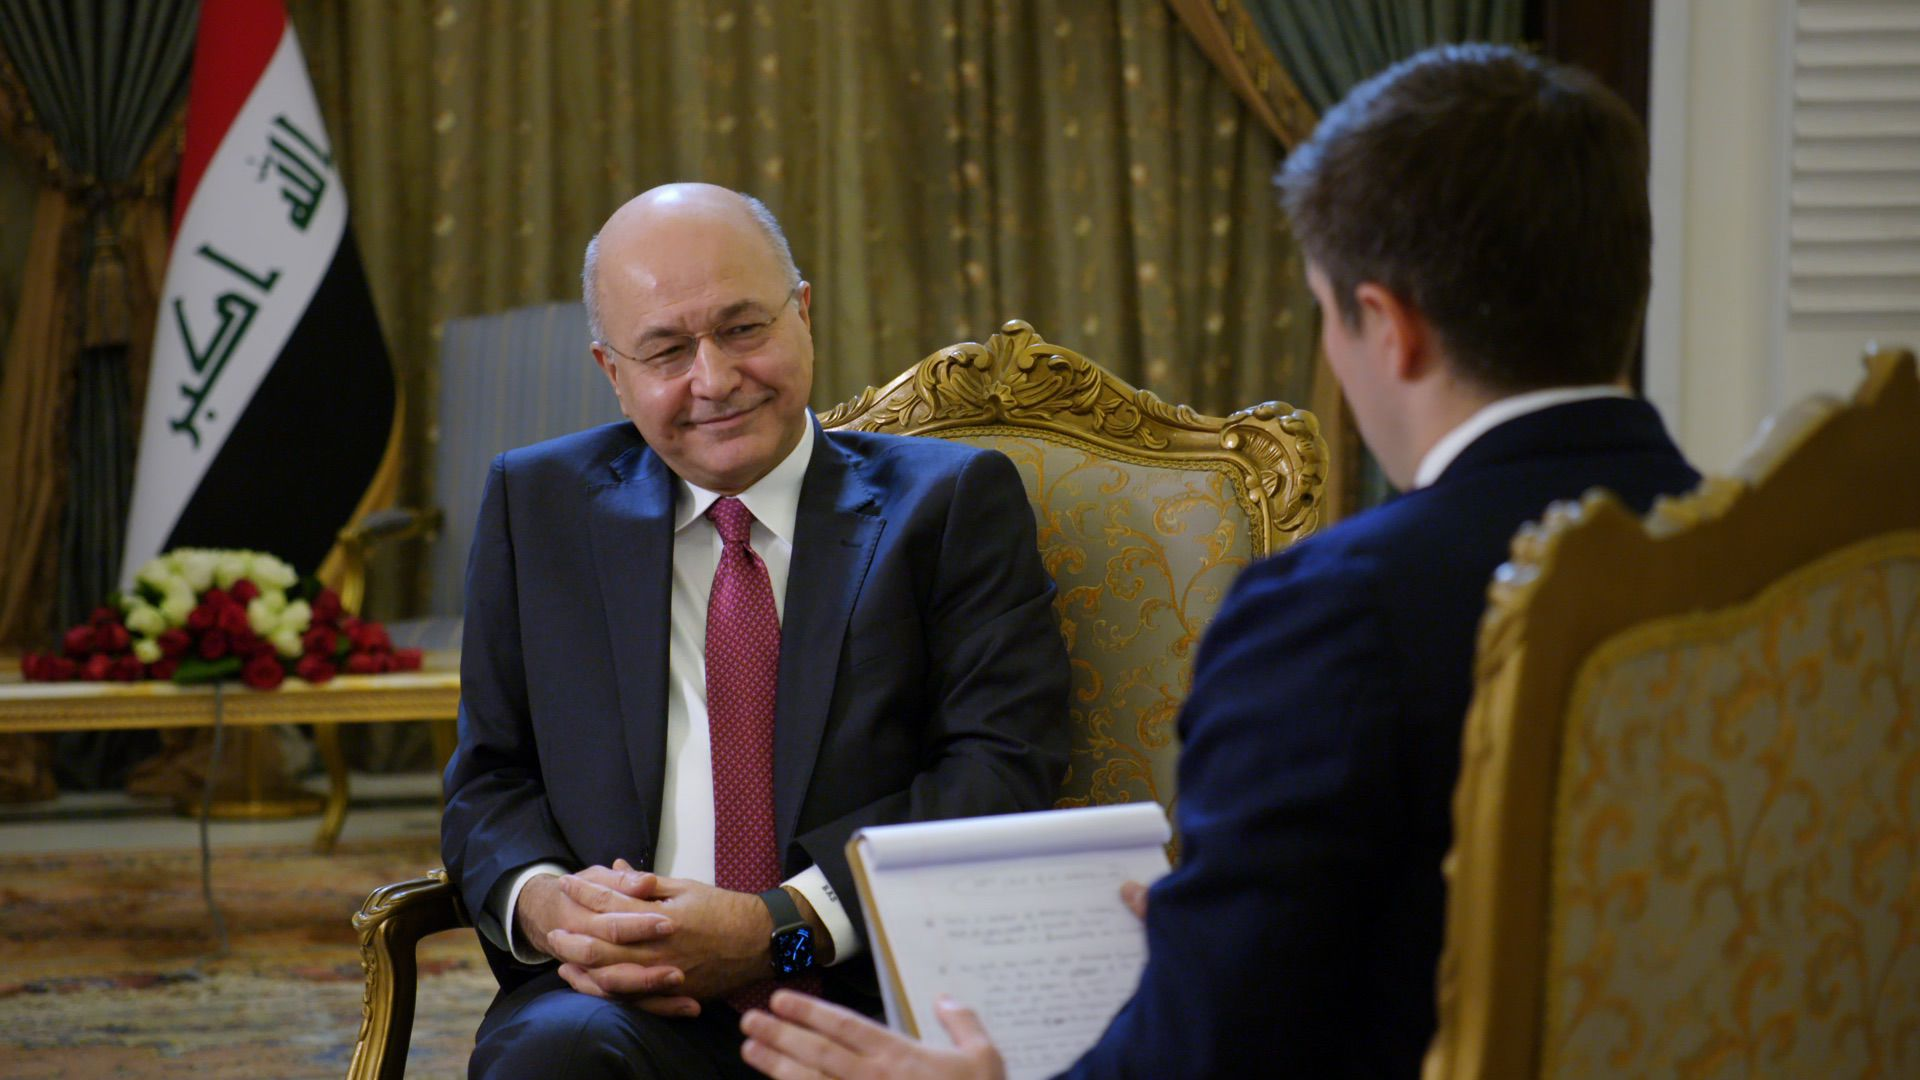 Iraqi President Barham Salih smiles as he gives an interview